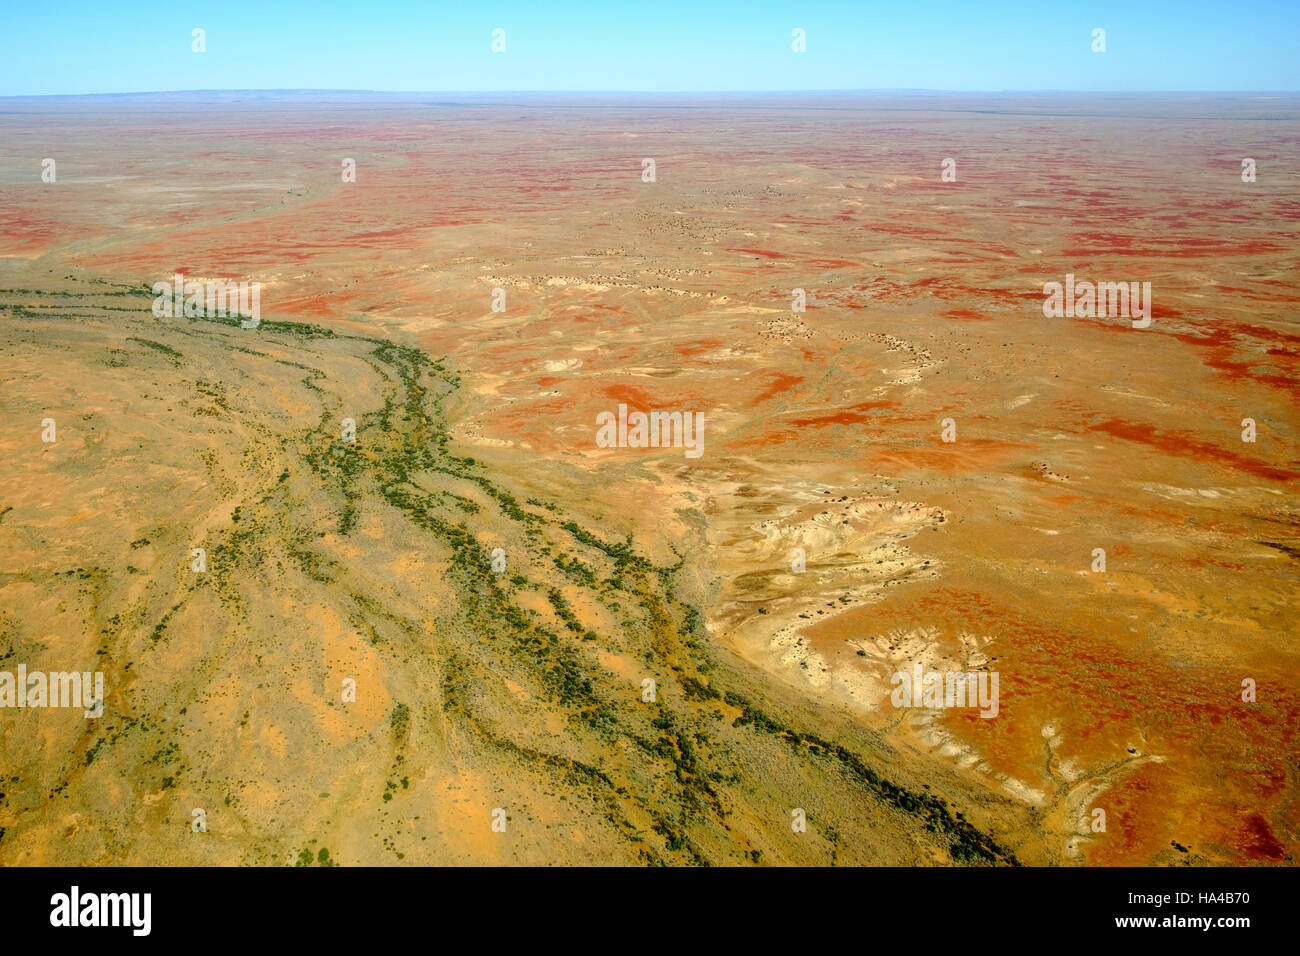 An aerial view of creeks cutting through the parched Australian Outback desert in South Australia's far north. - Stock Image